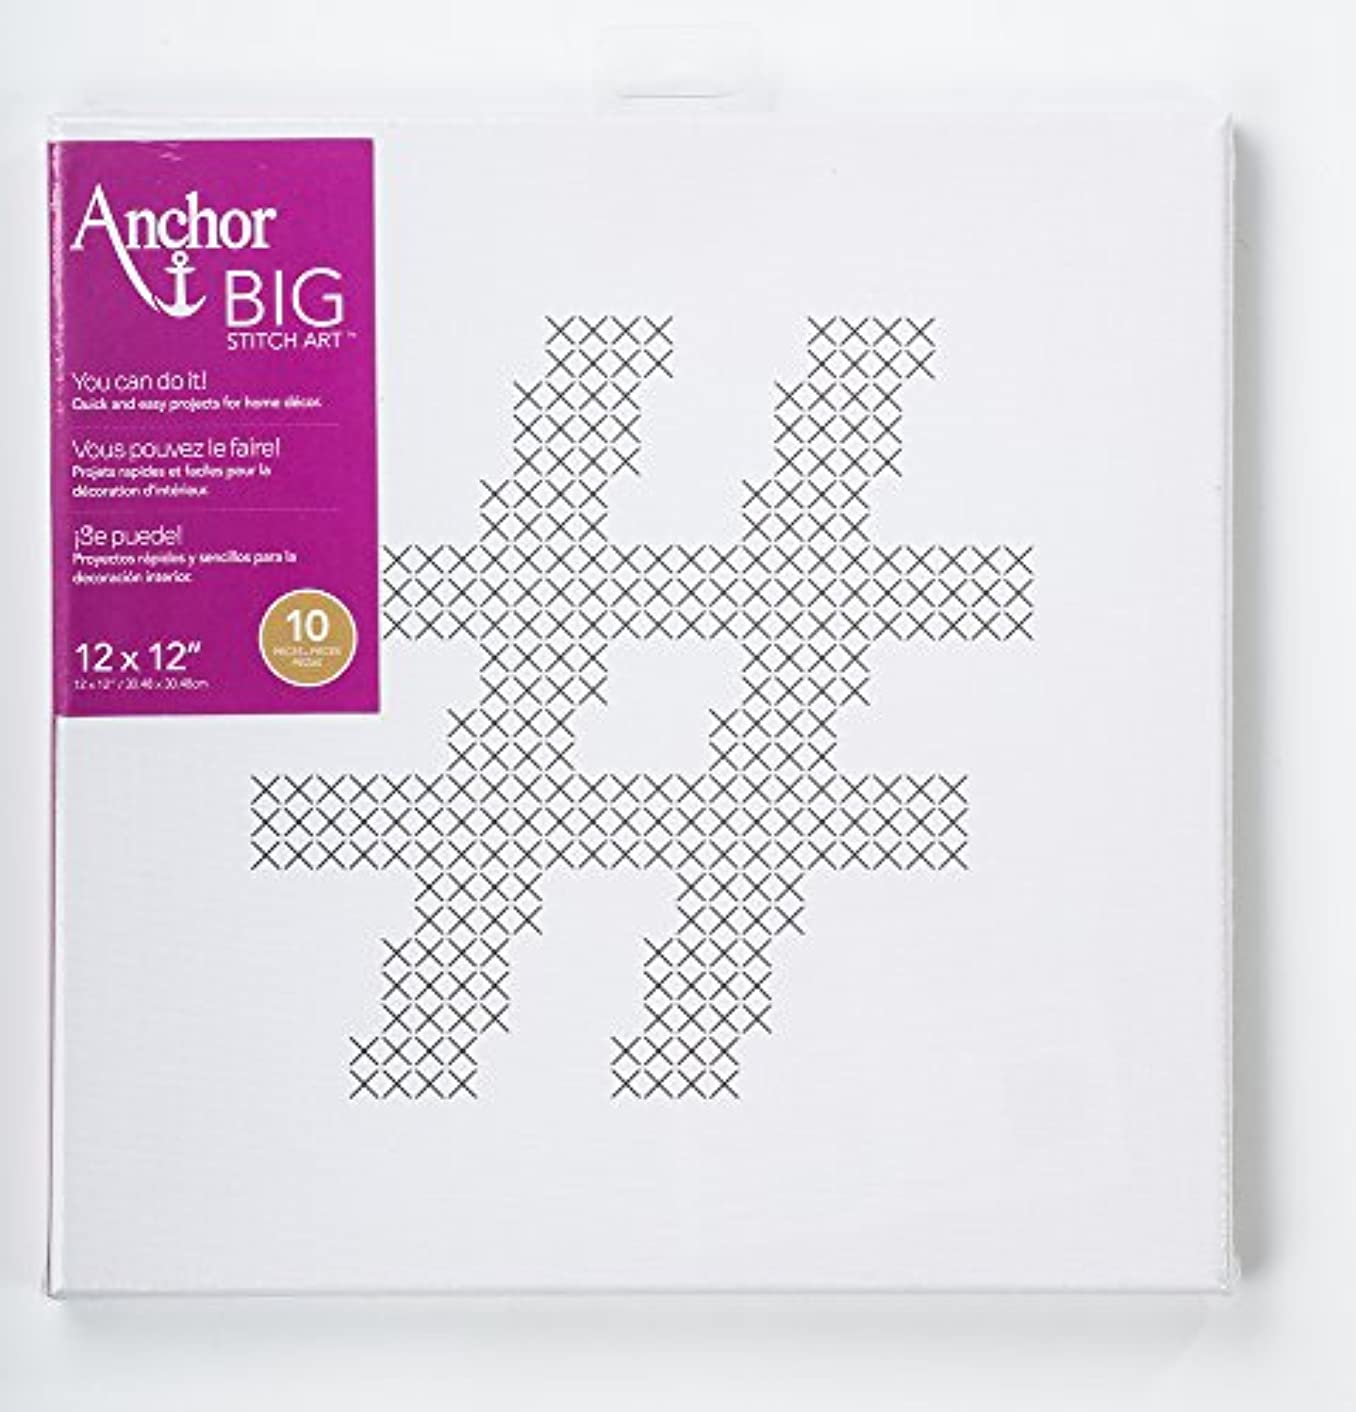 Anchor Big Stitch Counted Cross-Stitch Kit w/ Embroidery Floss Hashtag, 12